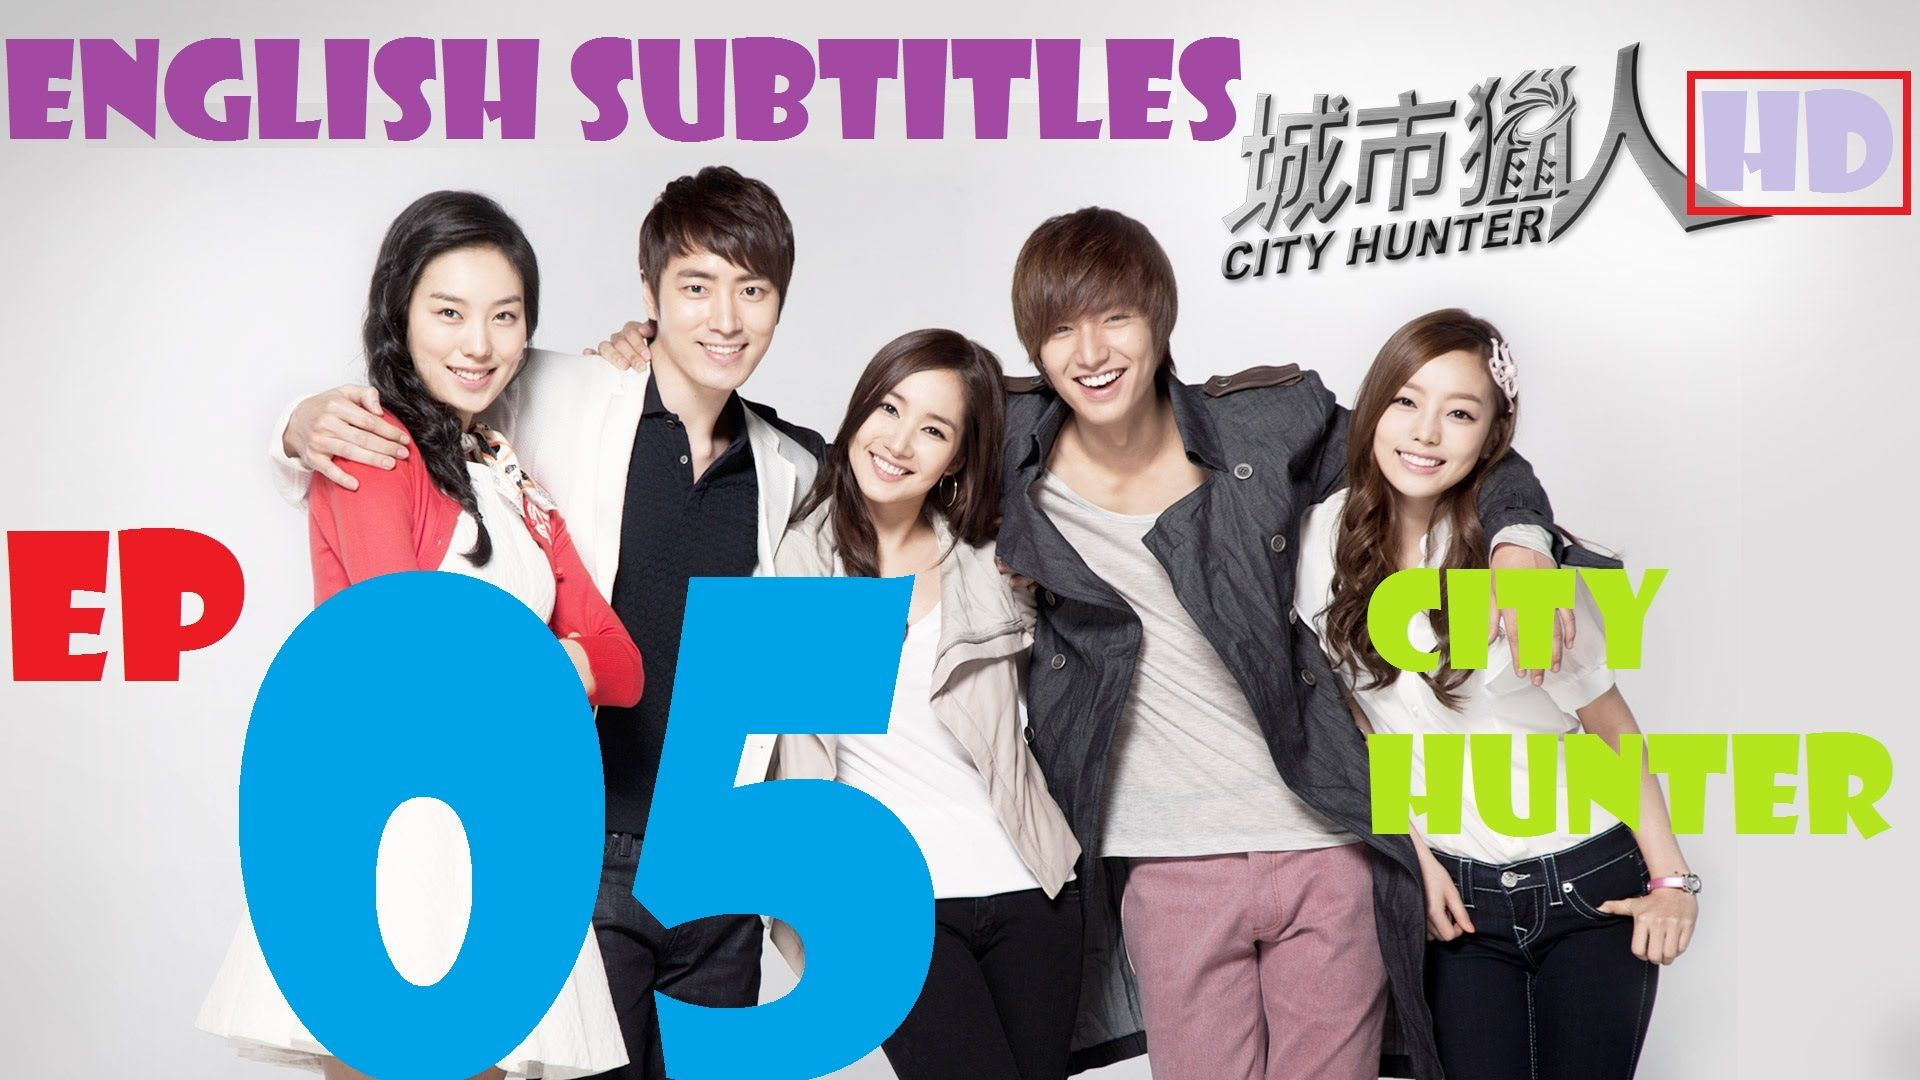 City Hunter Episode 5 Eng Sub 시티헌터 Ep 5 [English